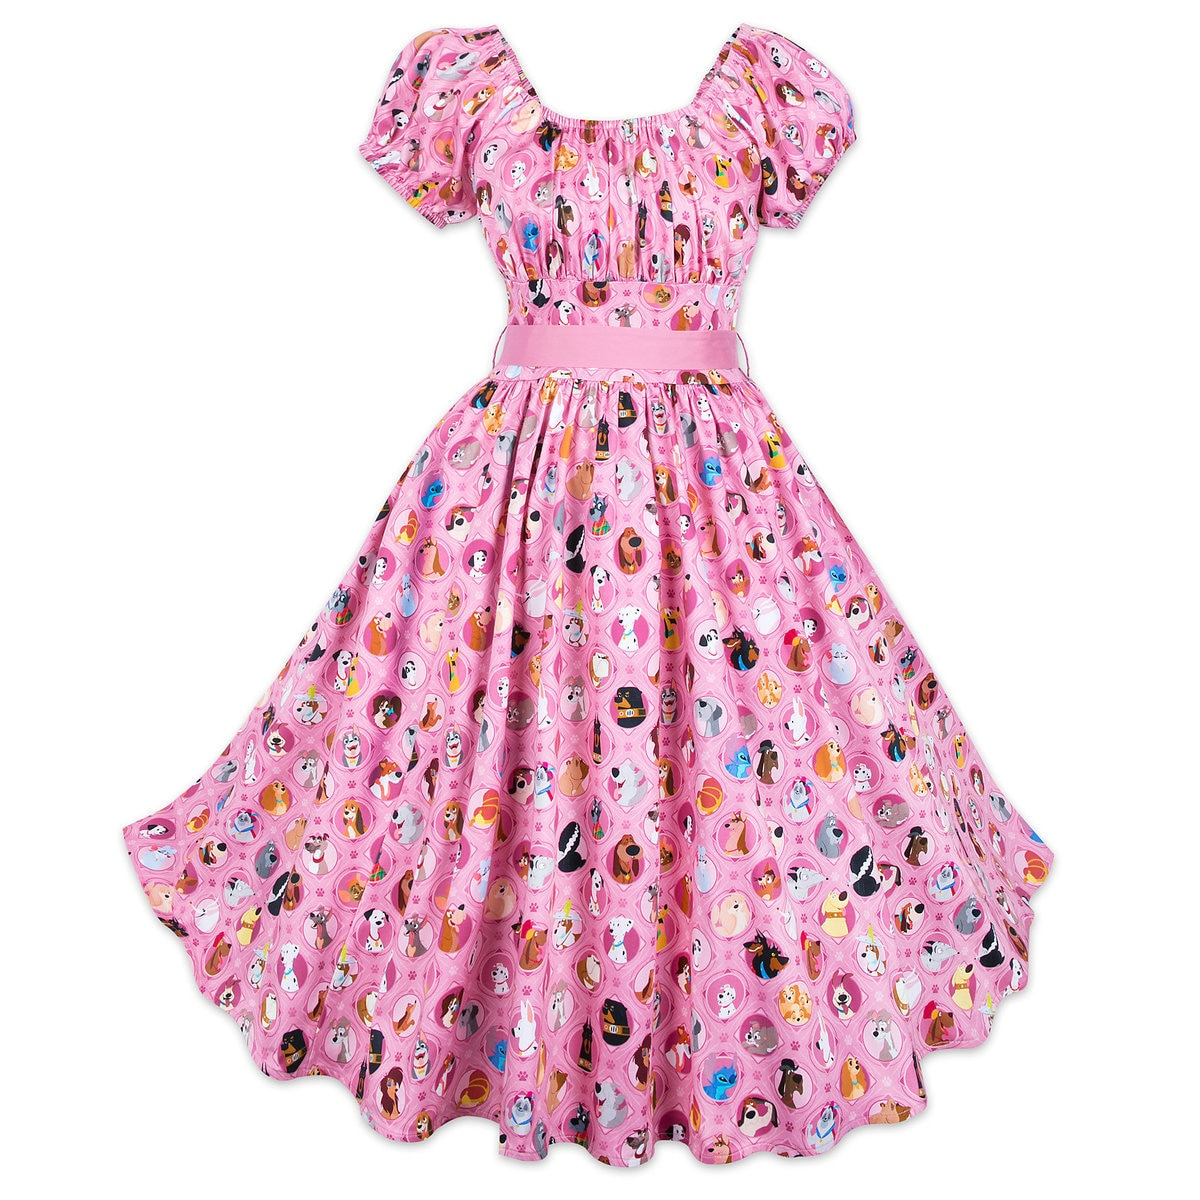 0dab61ff1 Product Image of Disney Dogs Dress for Women # 1